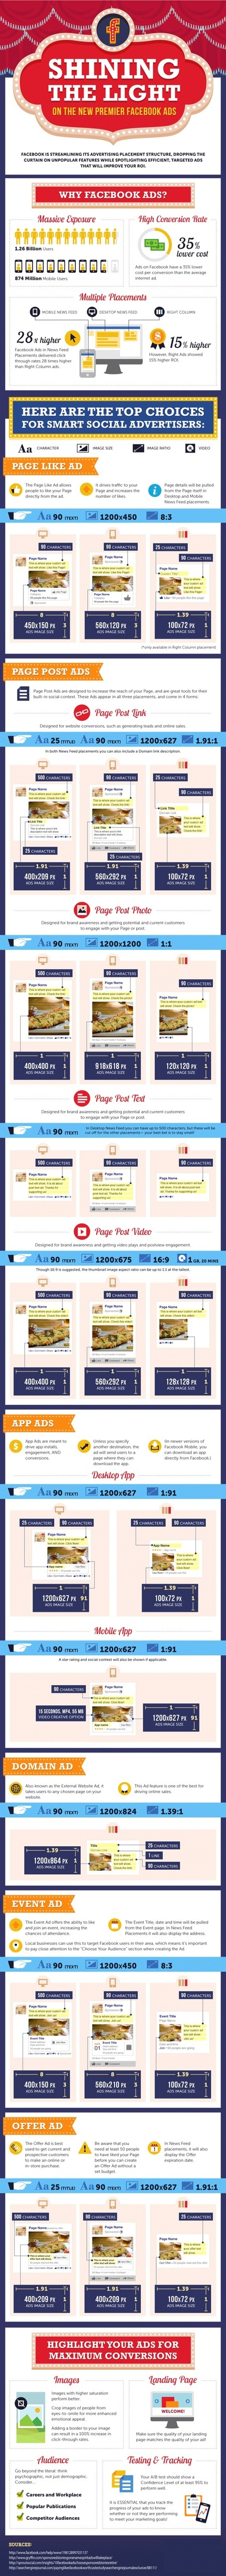 Tips for Maximizing Conversions with Facebook's Newest Ads #Infographic | MarketingHits | Scoop.it